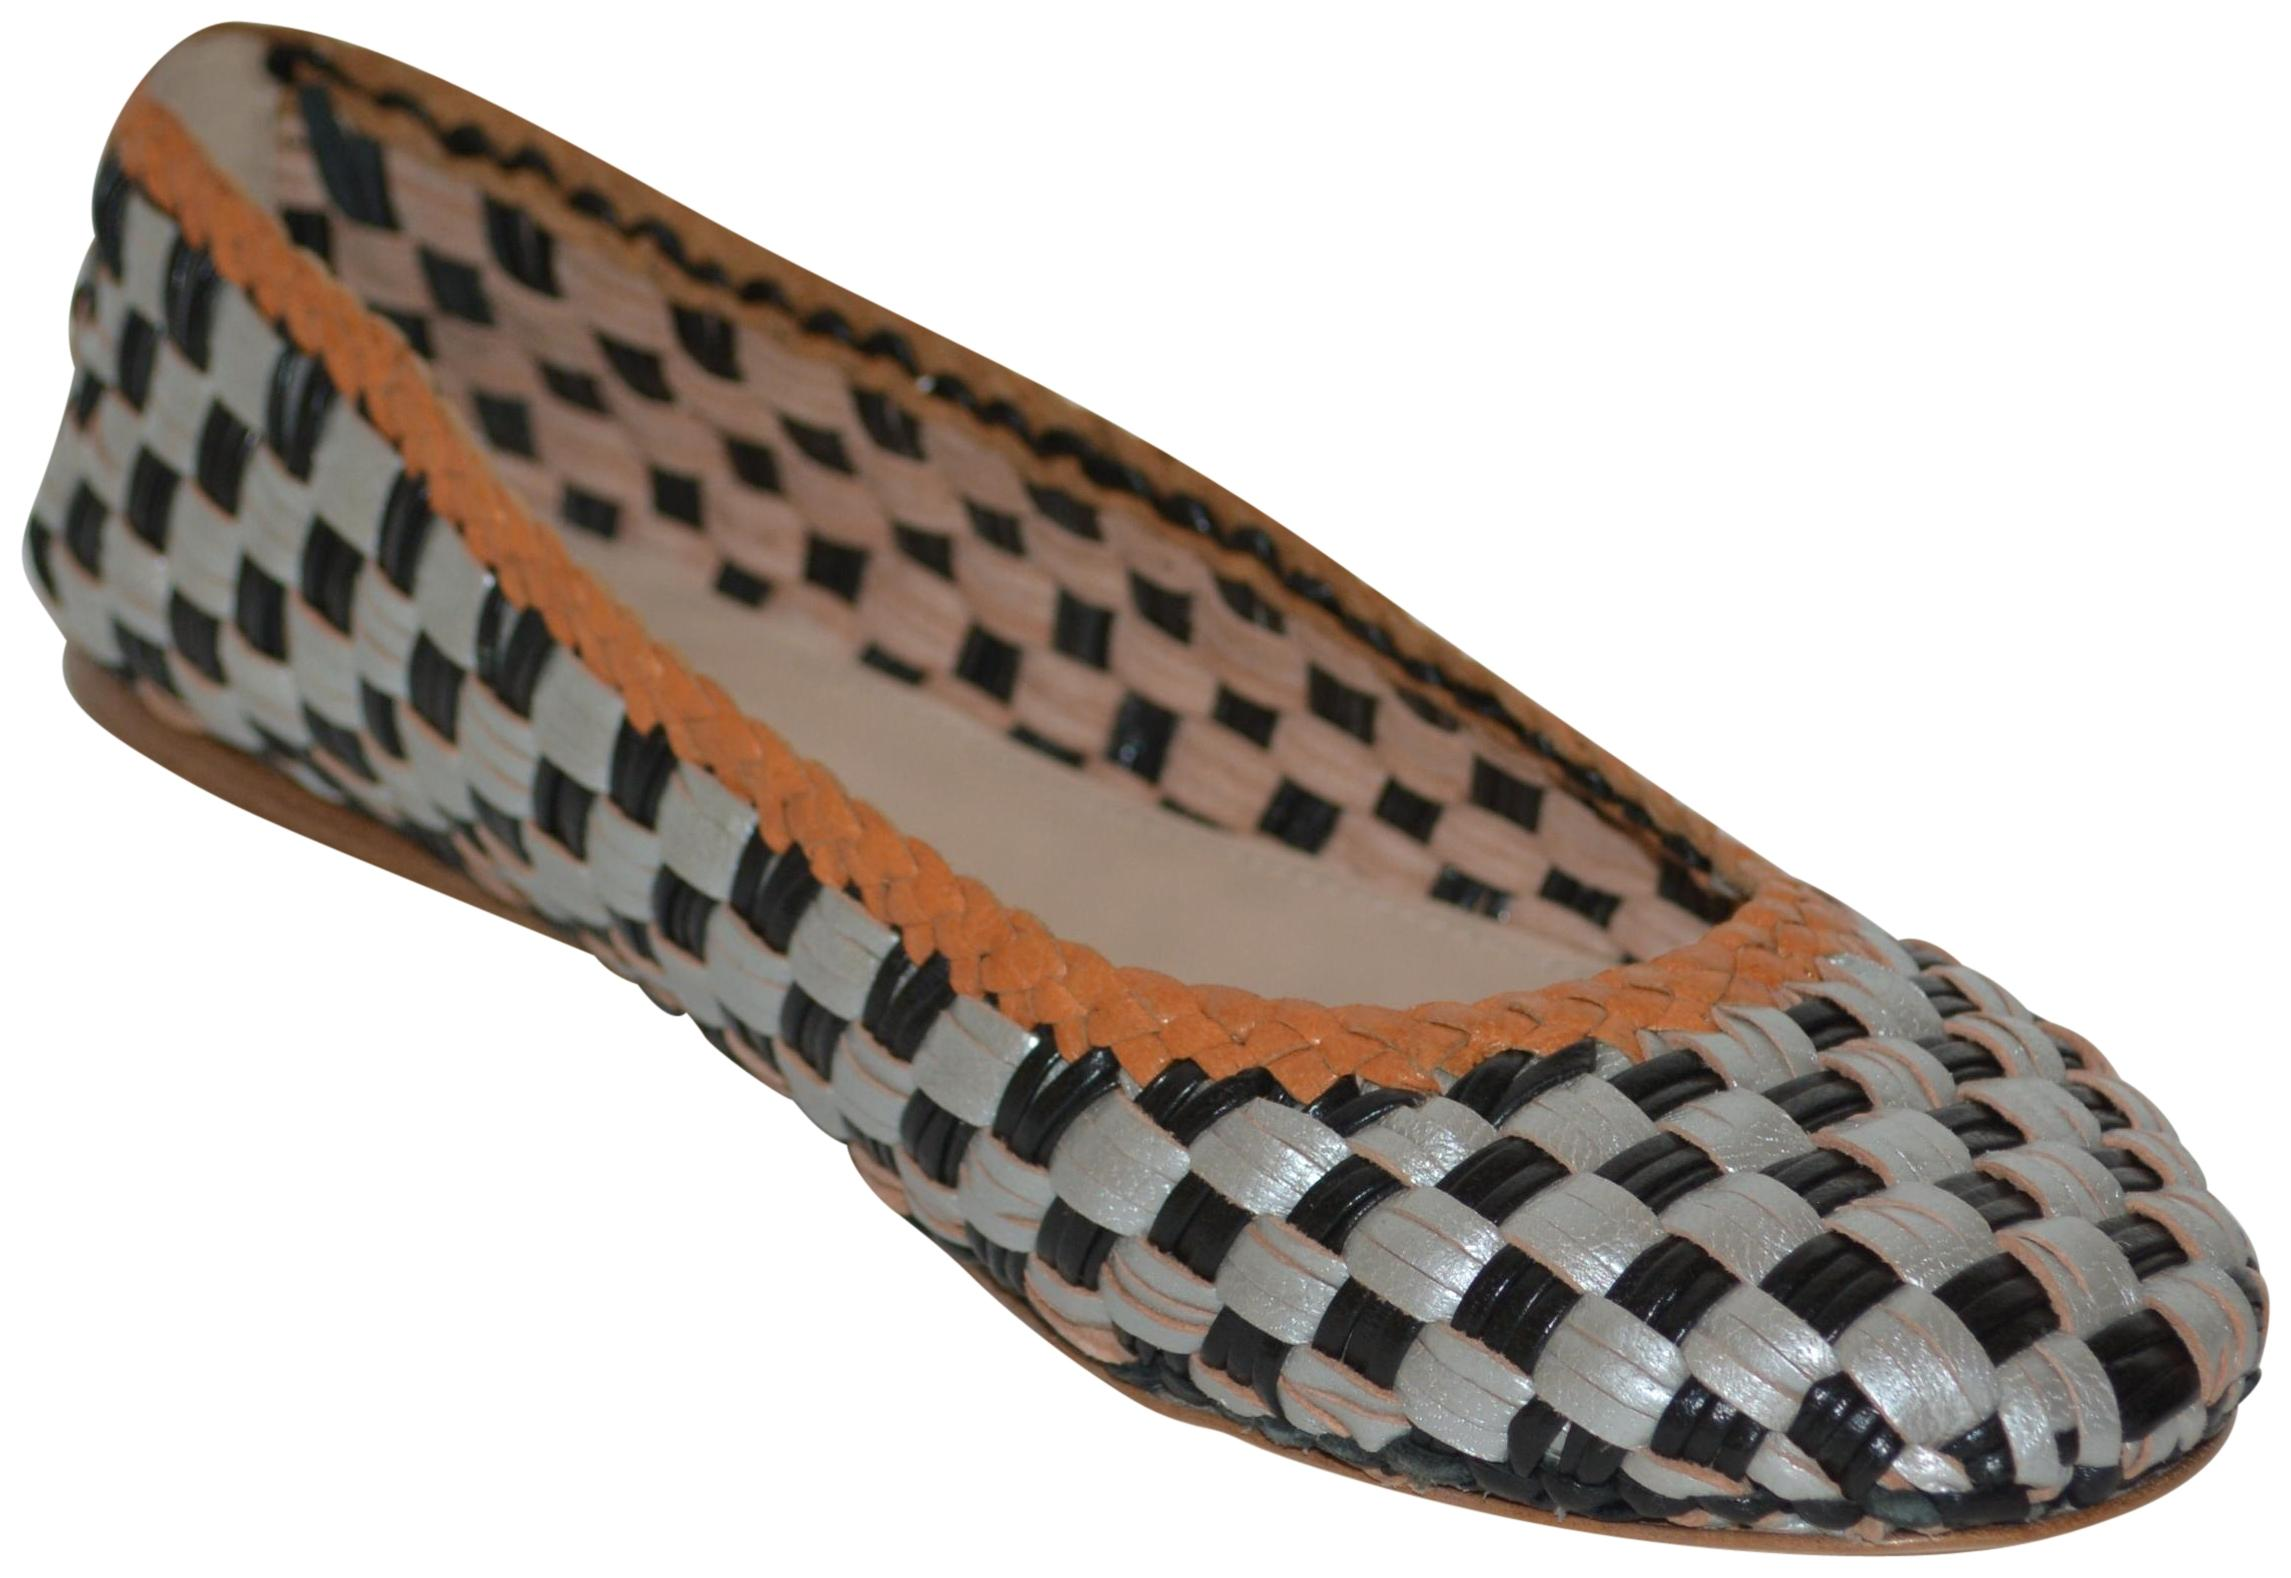 Prada Black Leather / Silver / Brown Leather Black Woven Eu 38 New In Italy Flats Size US 8 Regular (M, B) 7cf344